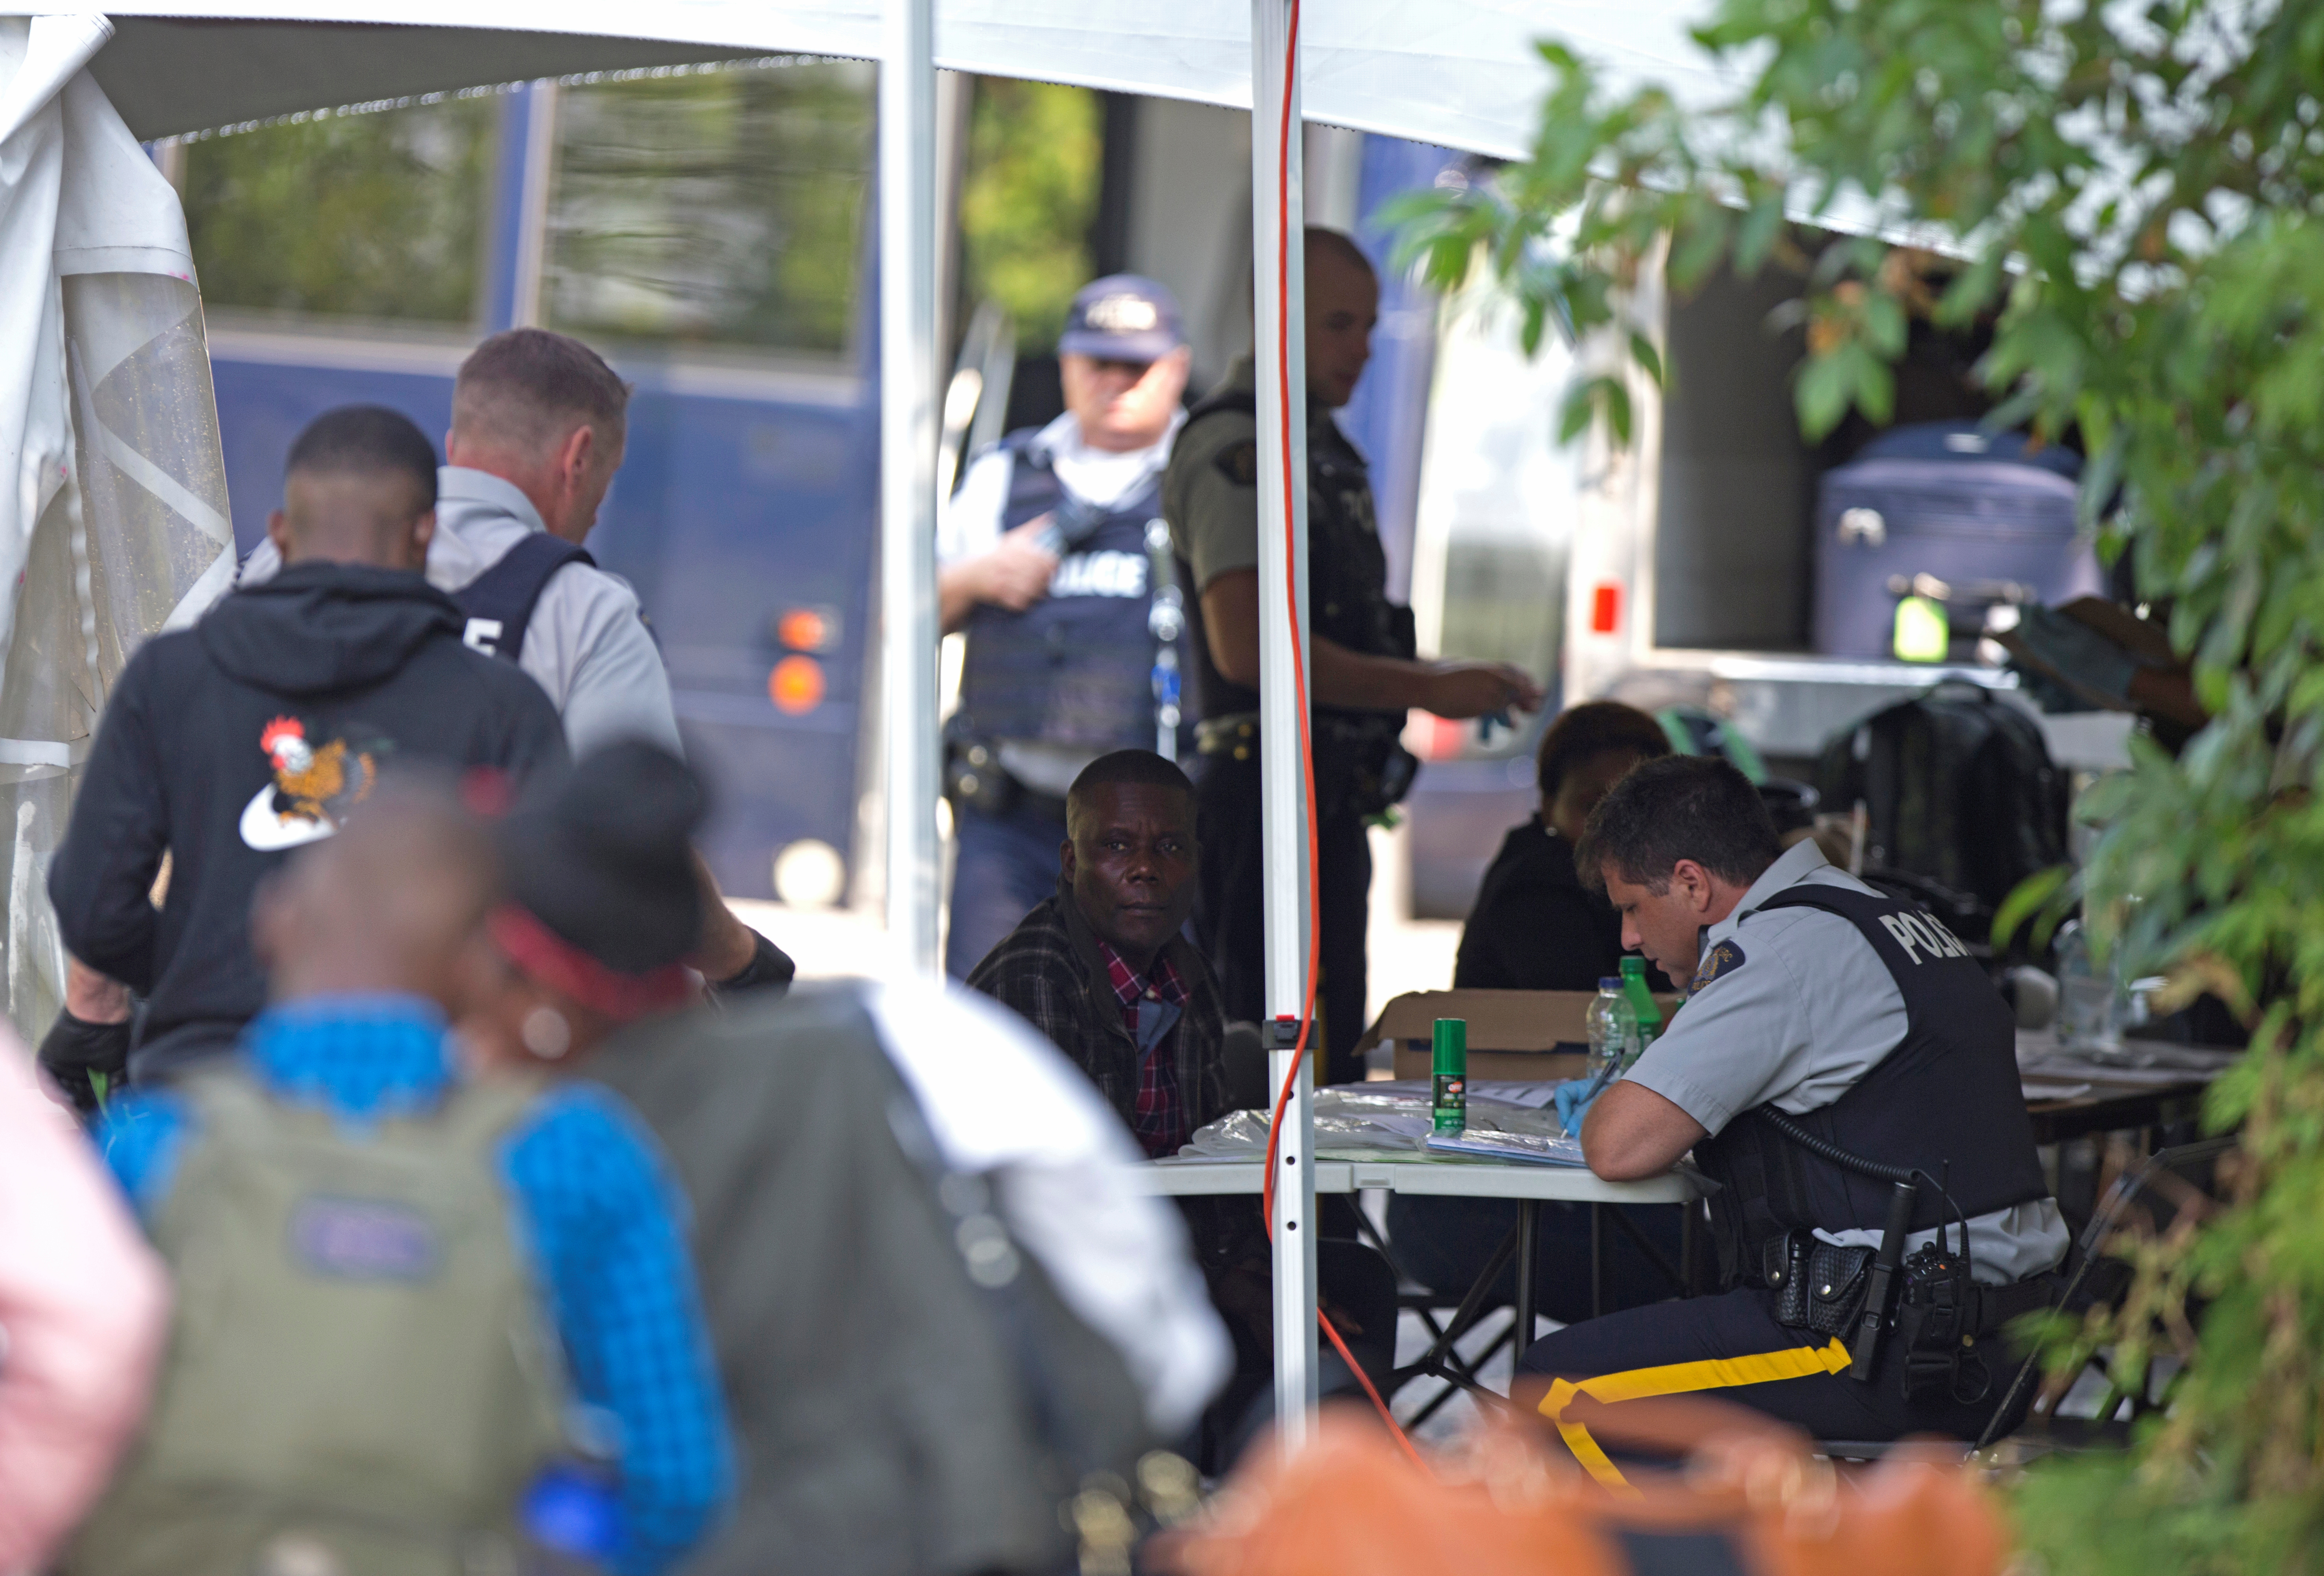 Refugees are processed by the Royal Canadian Mounted Police (RCMP) after crossing illegally into Canada at the U.S.-Canada border on Roxham Road from Champlain, New York, August 3, 2017.